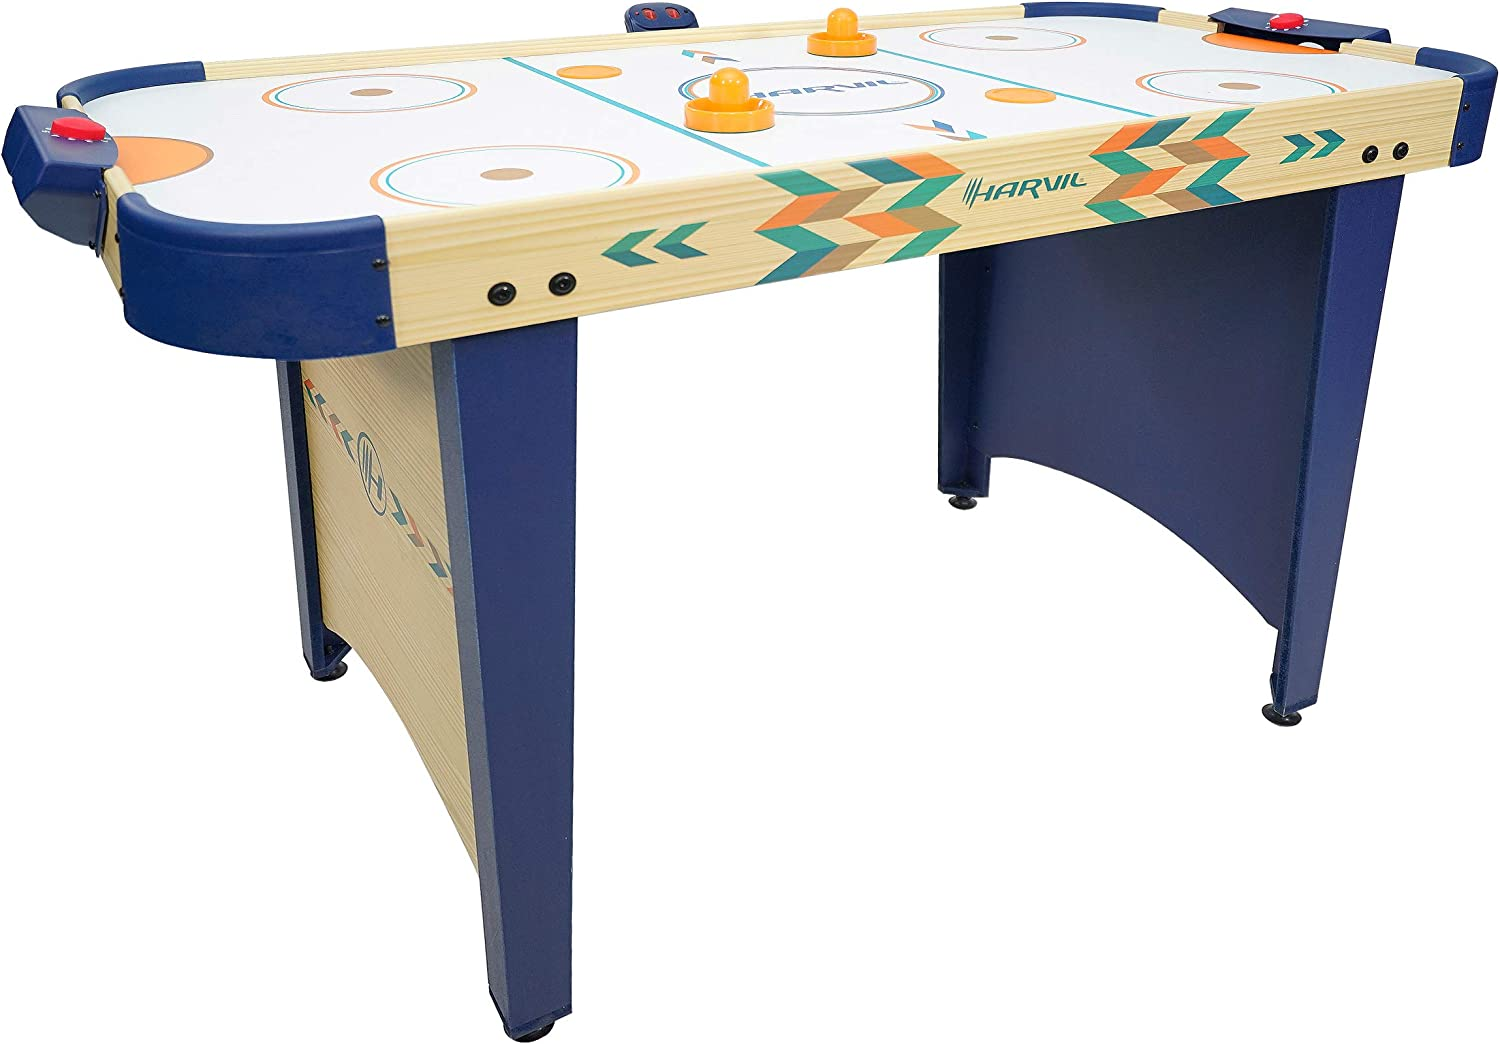 Top 10 Best Air Hockey Table for Kids (2020 Reviews & Guide) 5